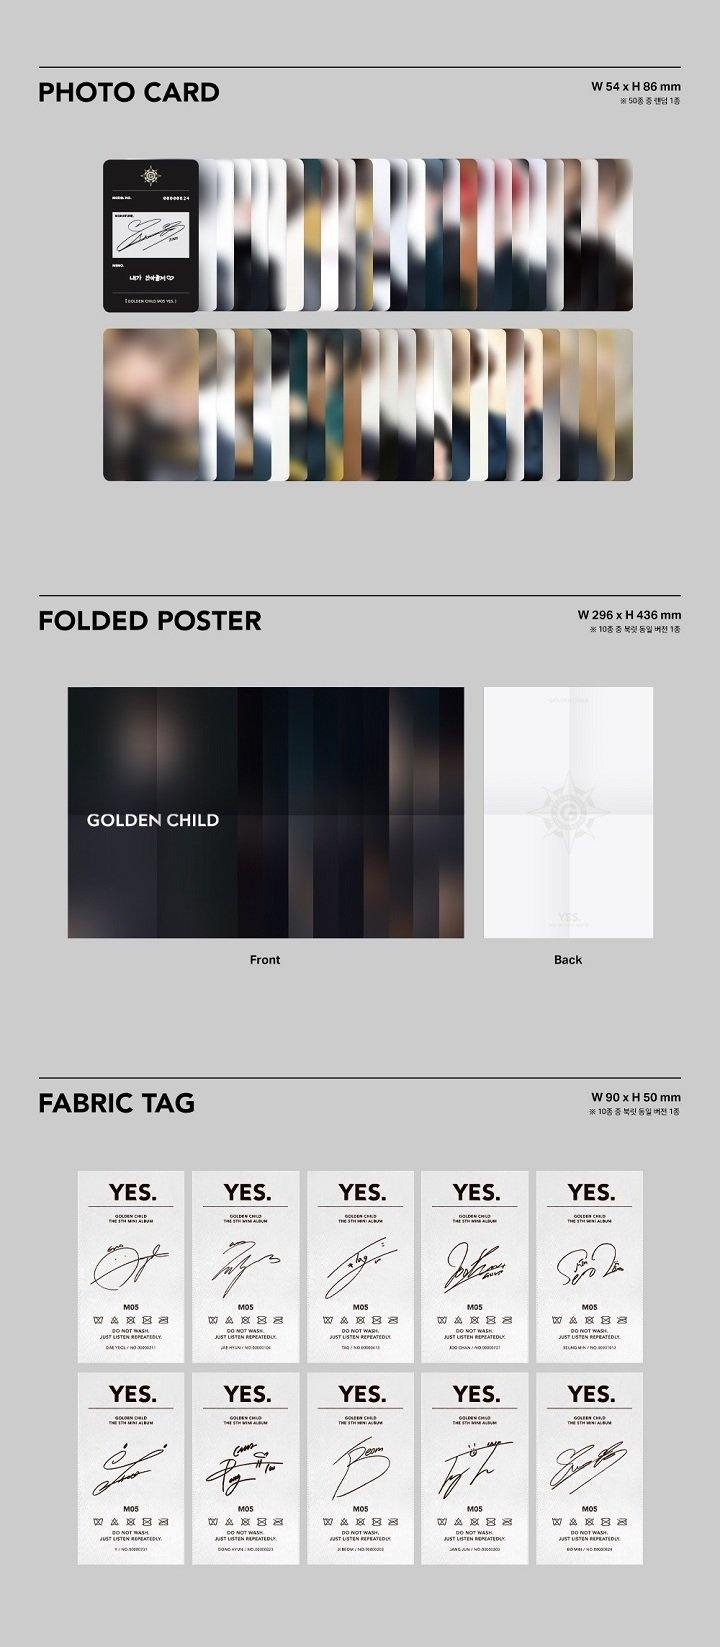 Golden Child - Yes. - 5th Mini Album - Pre-Order